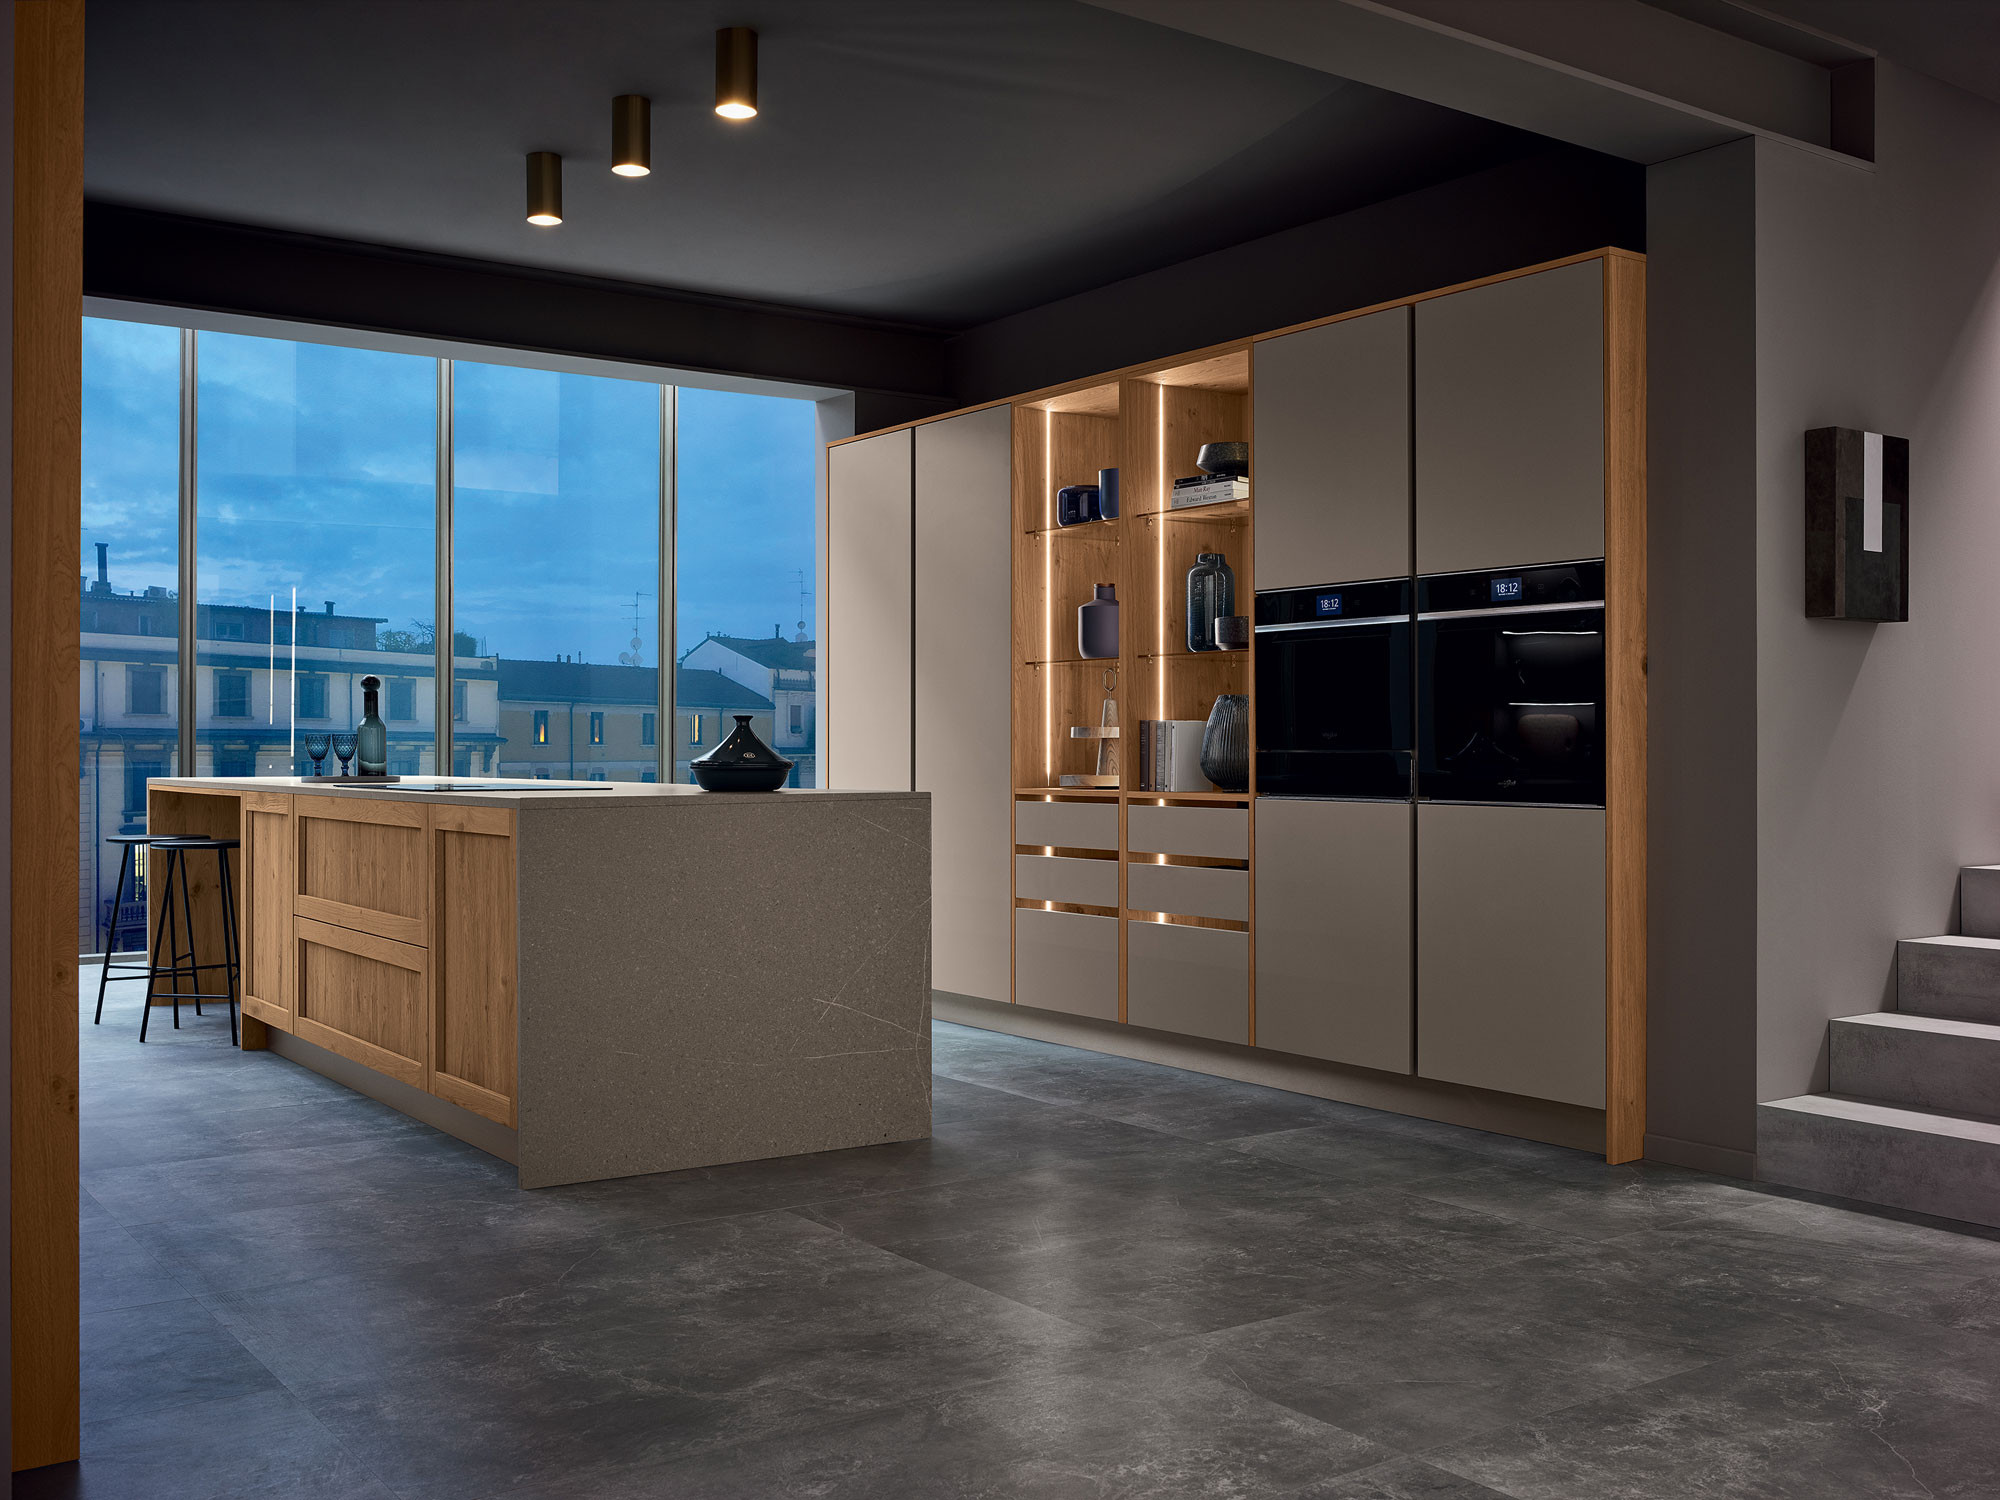 Showroom Veneta Cucine Brescia.Veneta Cucine At Milano Design Week 2019 Veneta Cucine